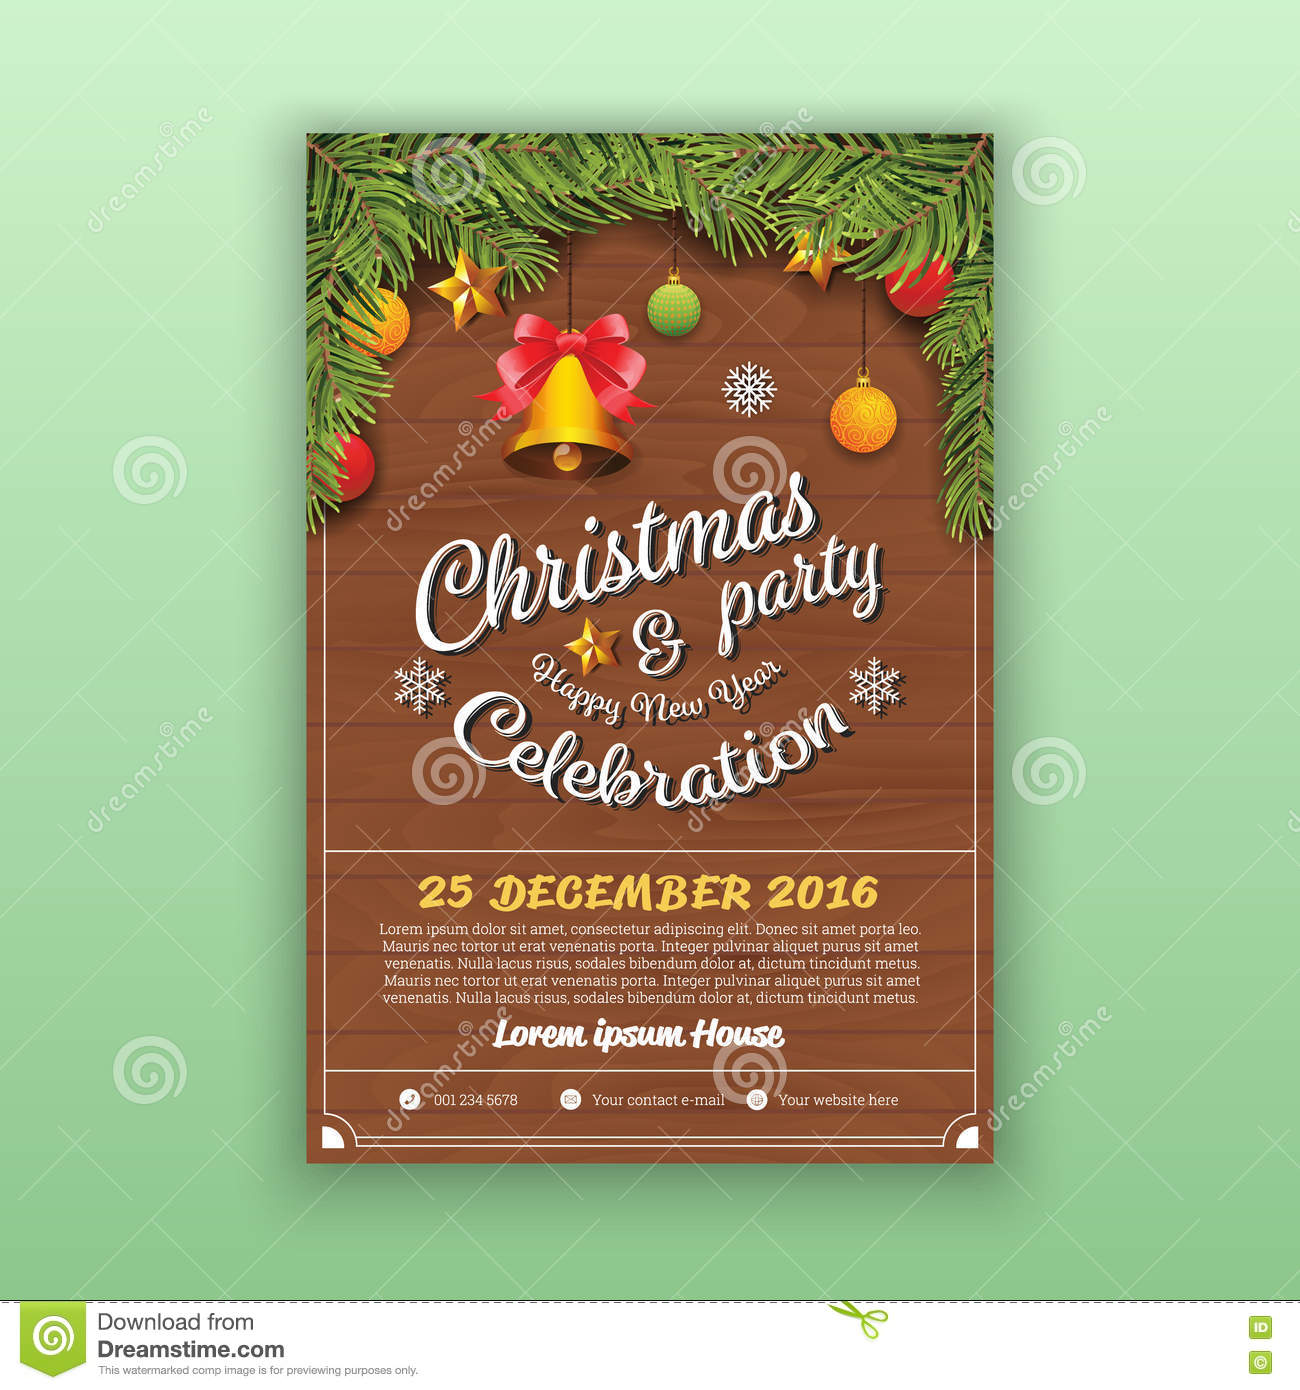 christmas happy new year party flyer template stock vector christmas happy new year party flyer template